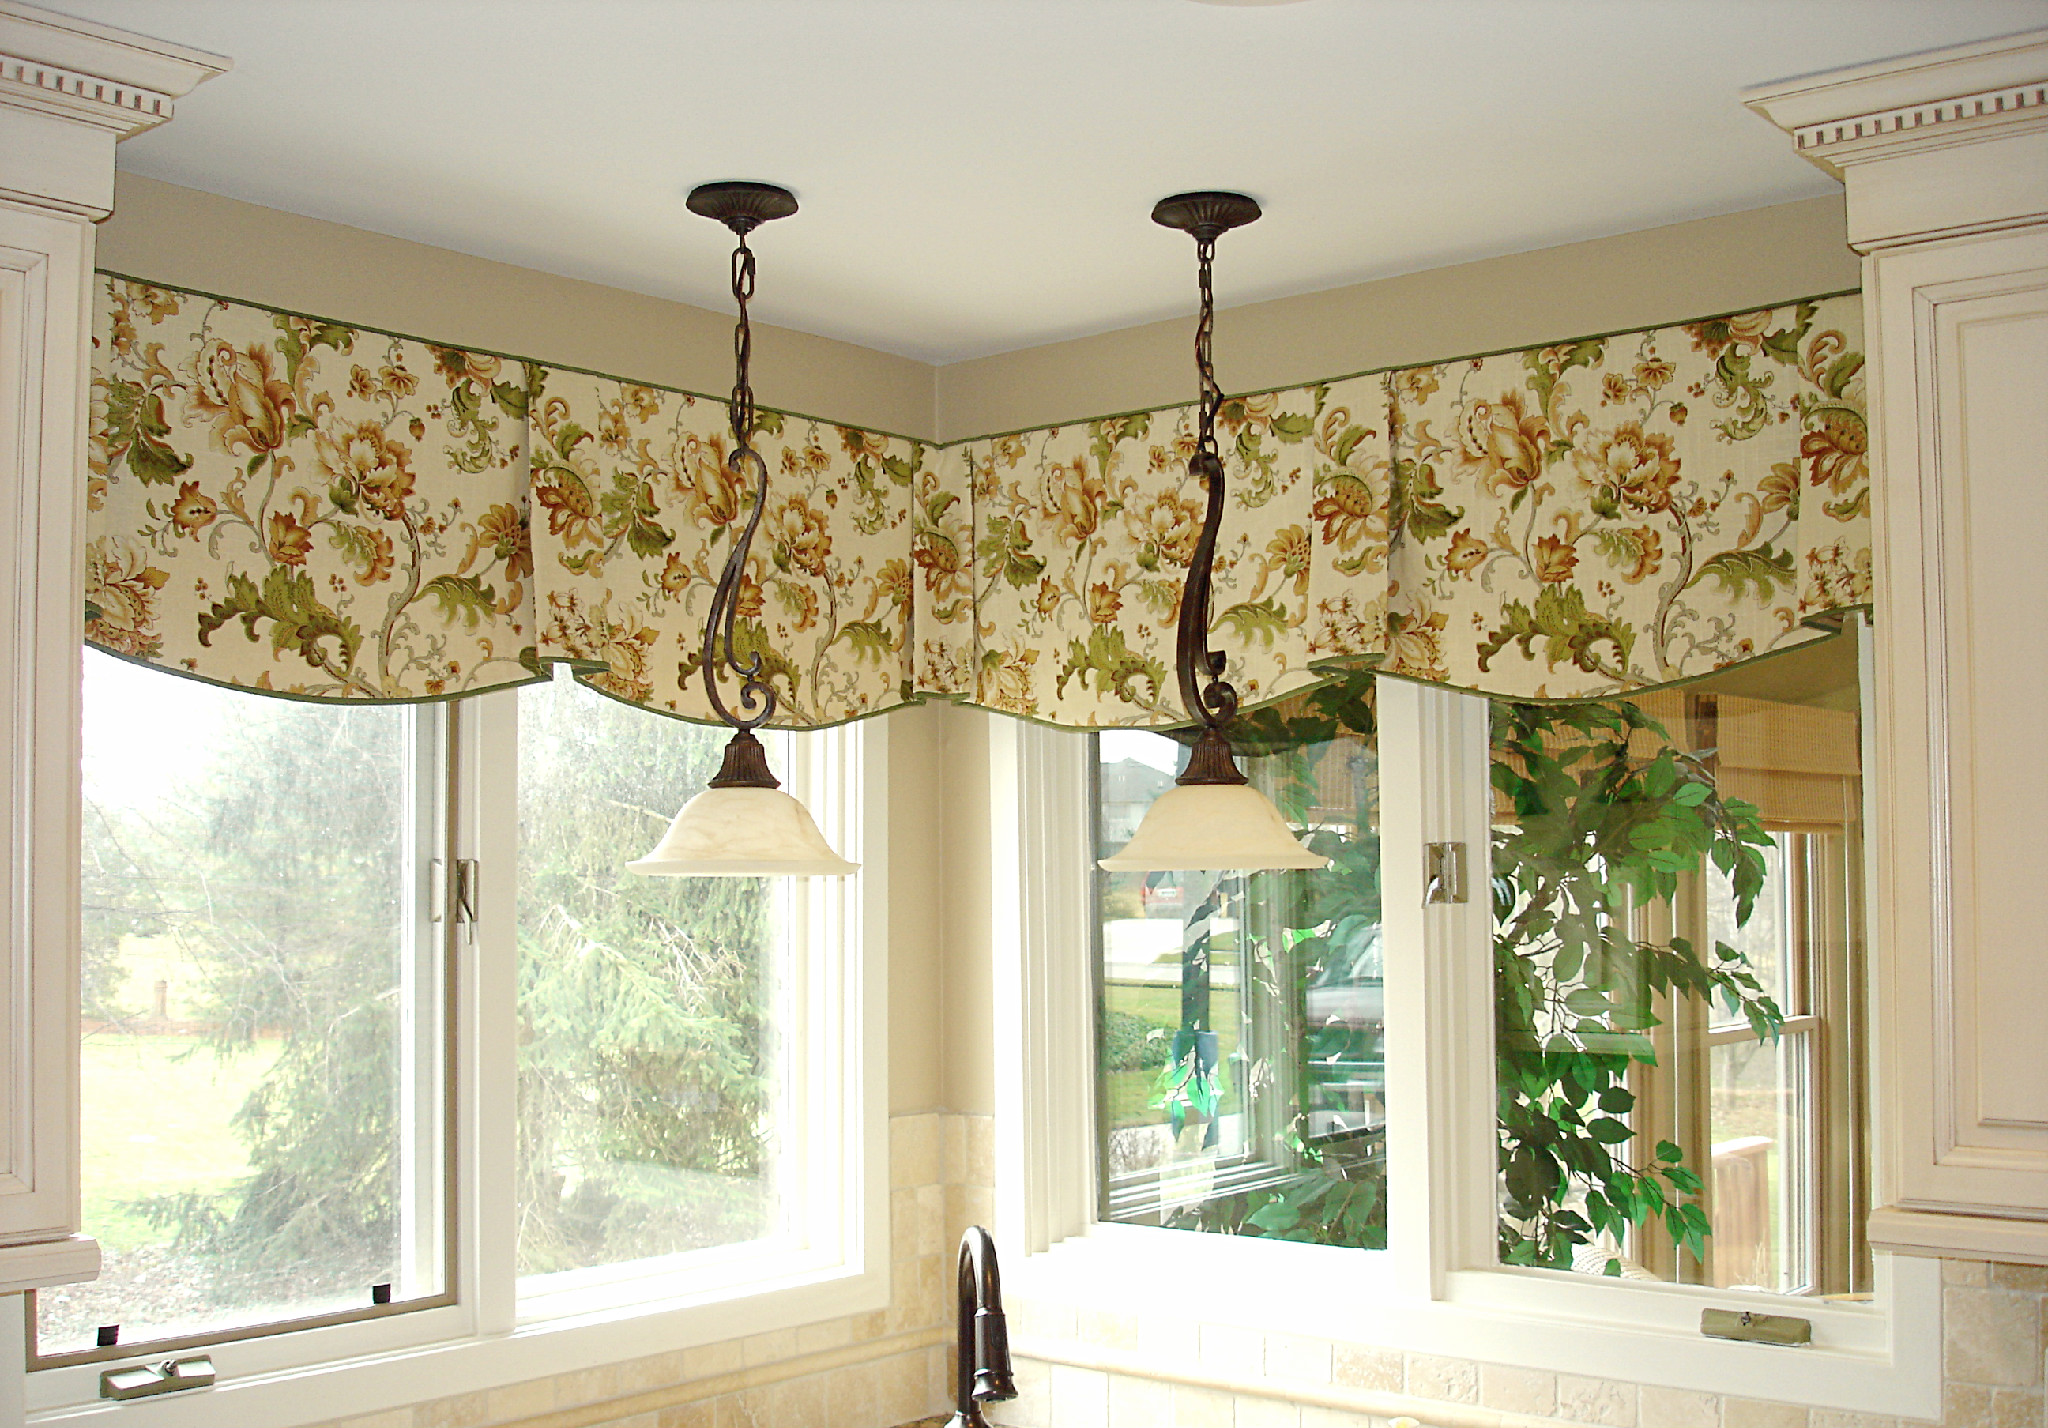 Window Curtain Decorating Ideas: Corner Window Curtains: Styles Of Decorating Ideas